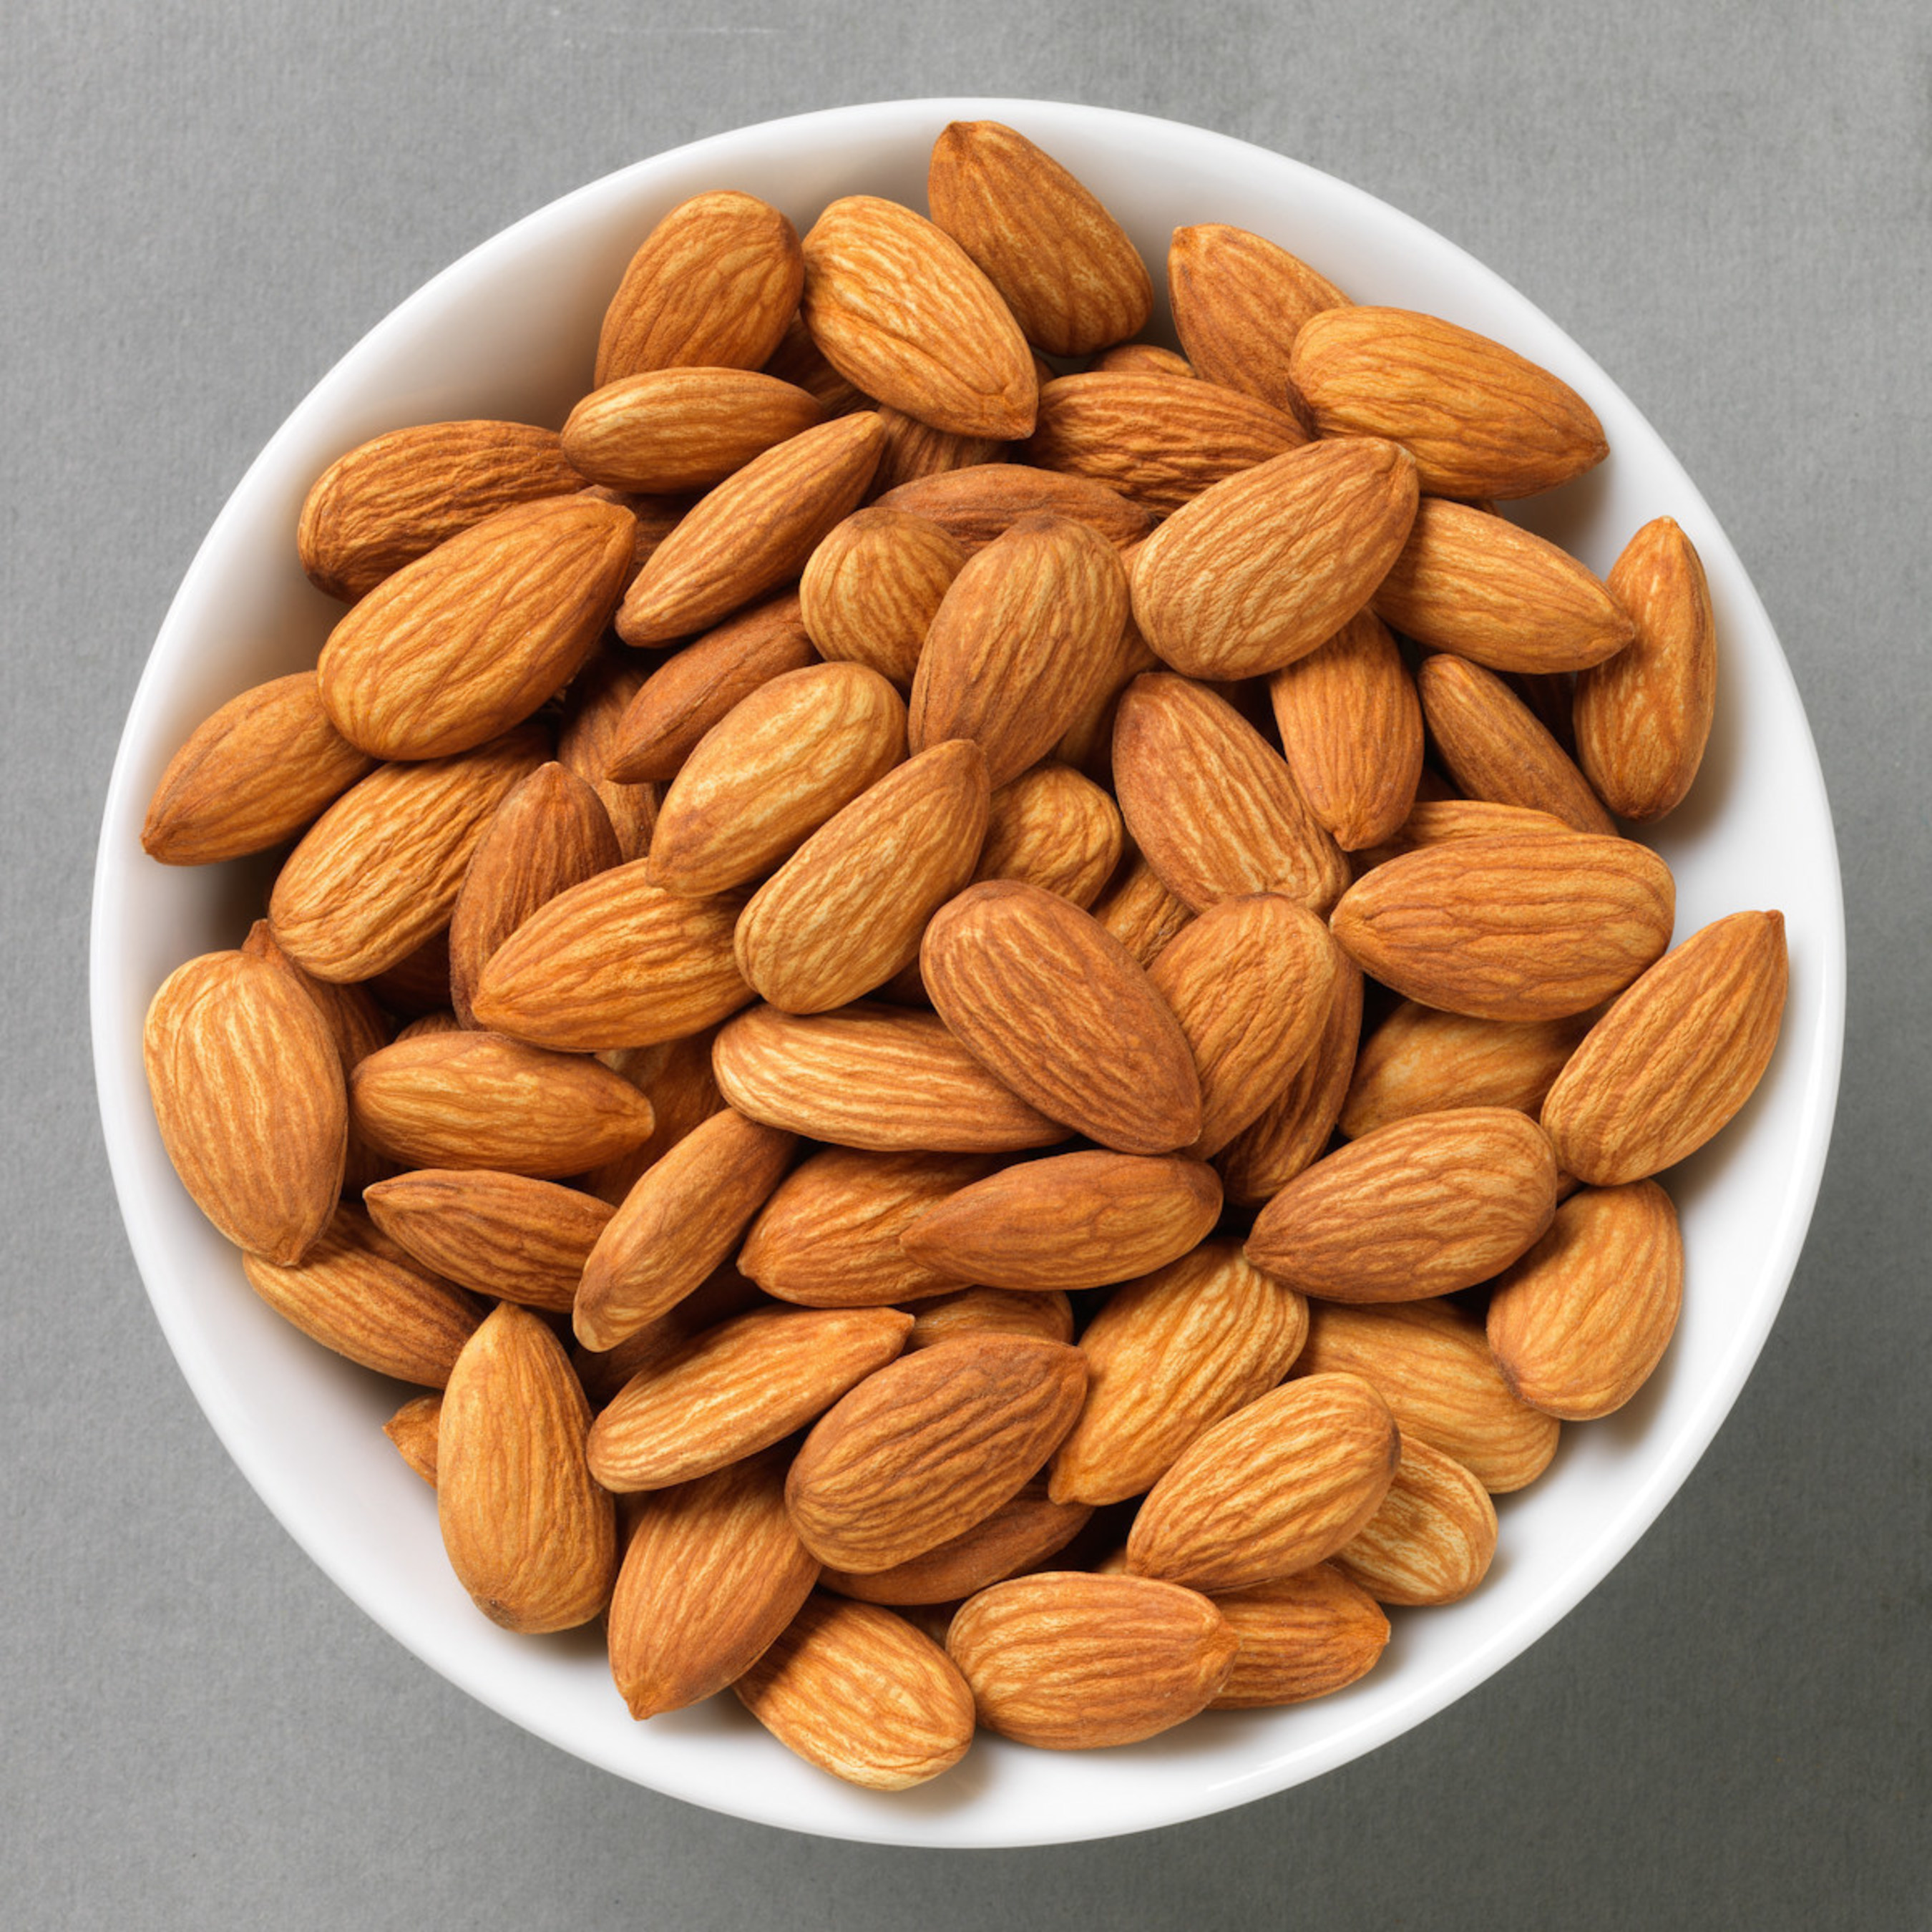 Discussion on this topic: News: Almonds Have 20 Percent Fewer Calories, news-almonds-have-20-percent-fewer-calories/